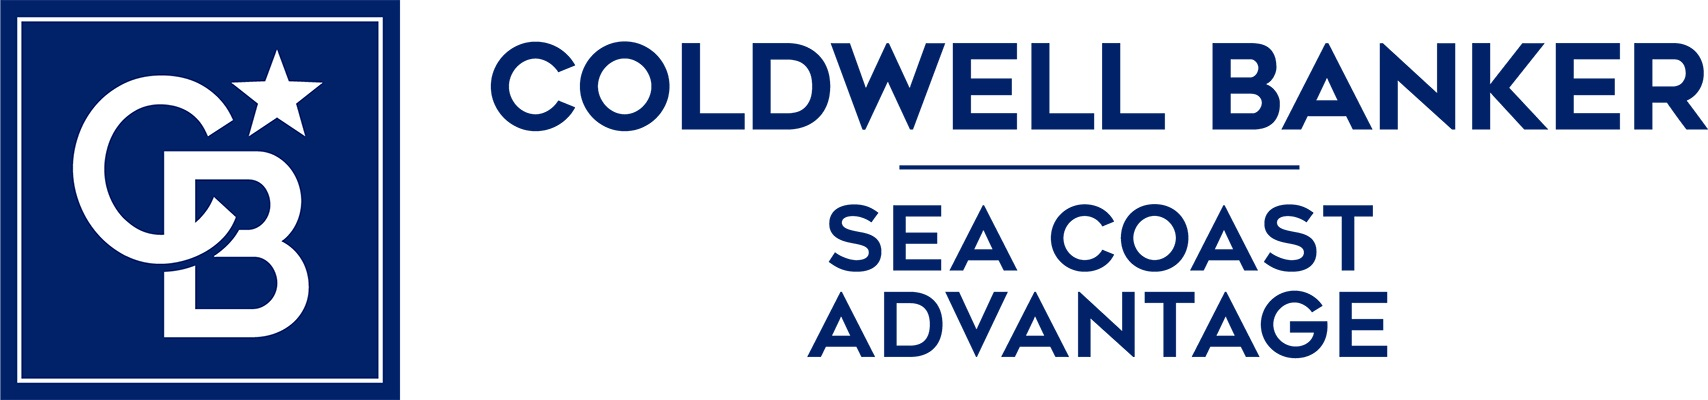 Michele Waggoner - Coldwell Banker Sea Coast Advantage Realty